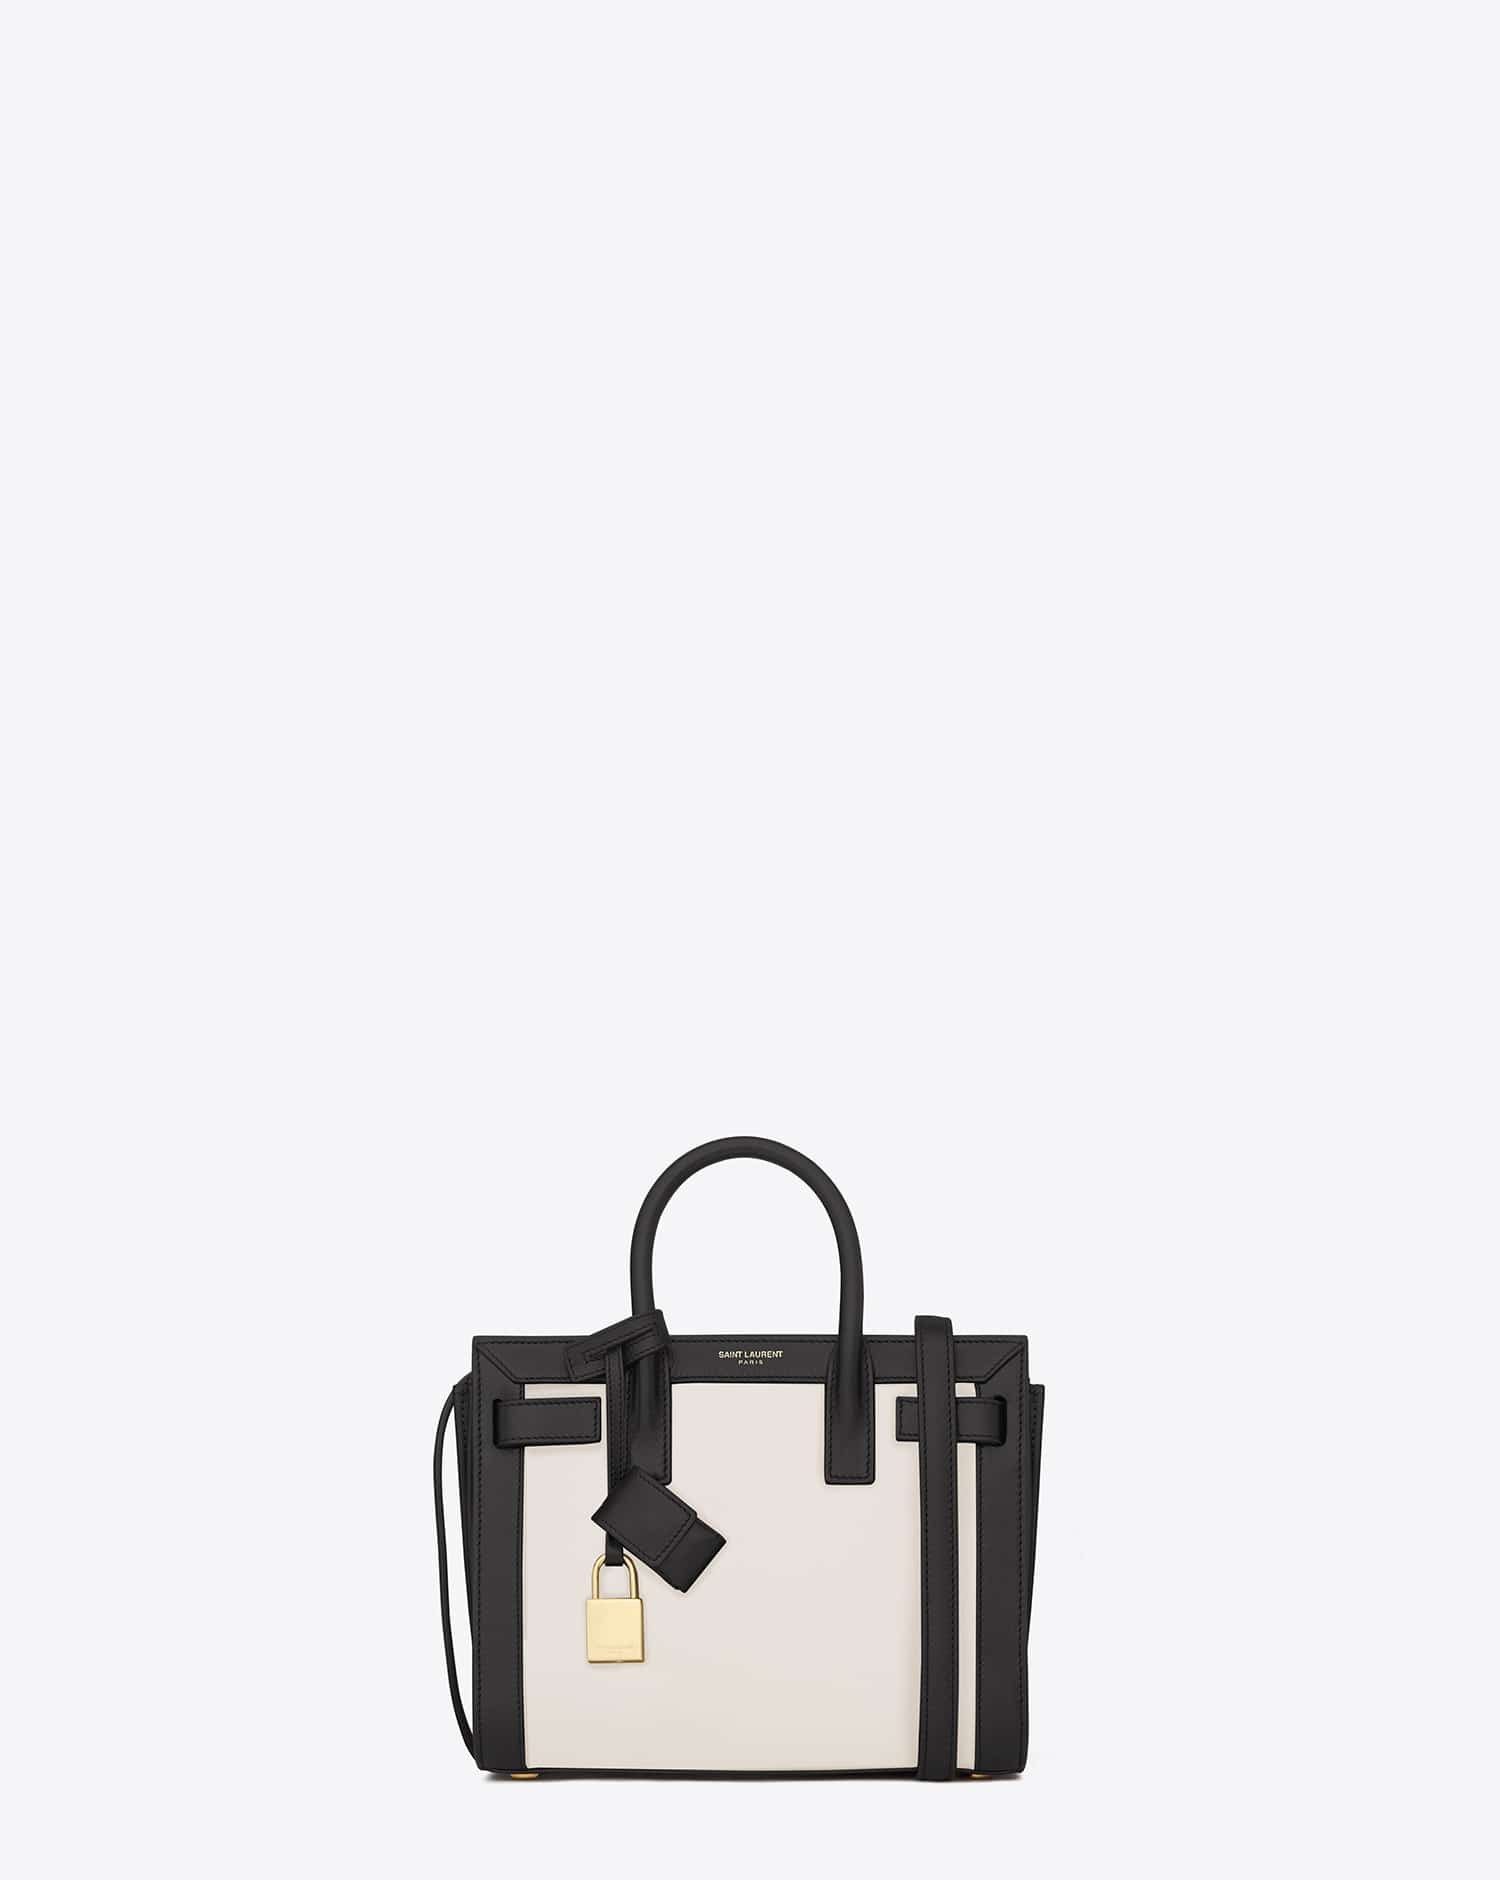 9b3c7f2e9ecc4 Saint Laurent Dove White Black Classic Nano Sac De Jour Bag - Cruise 2015